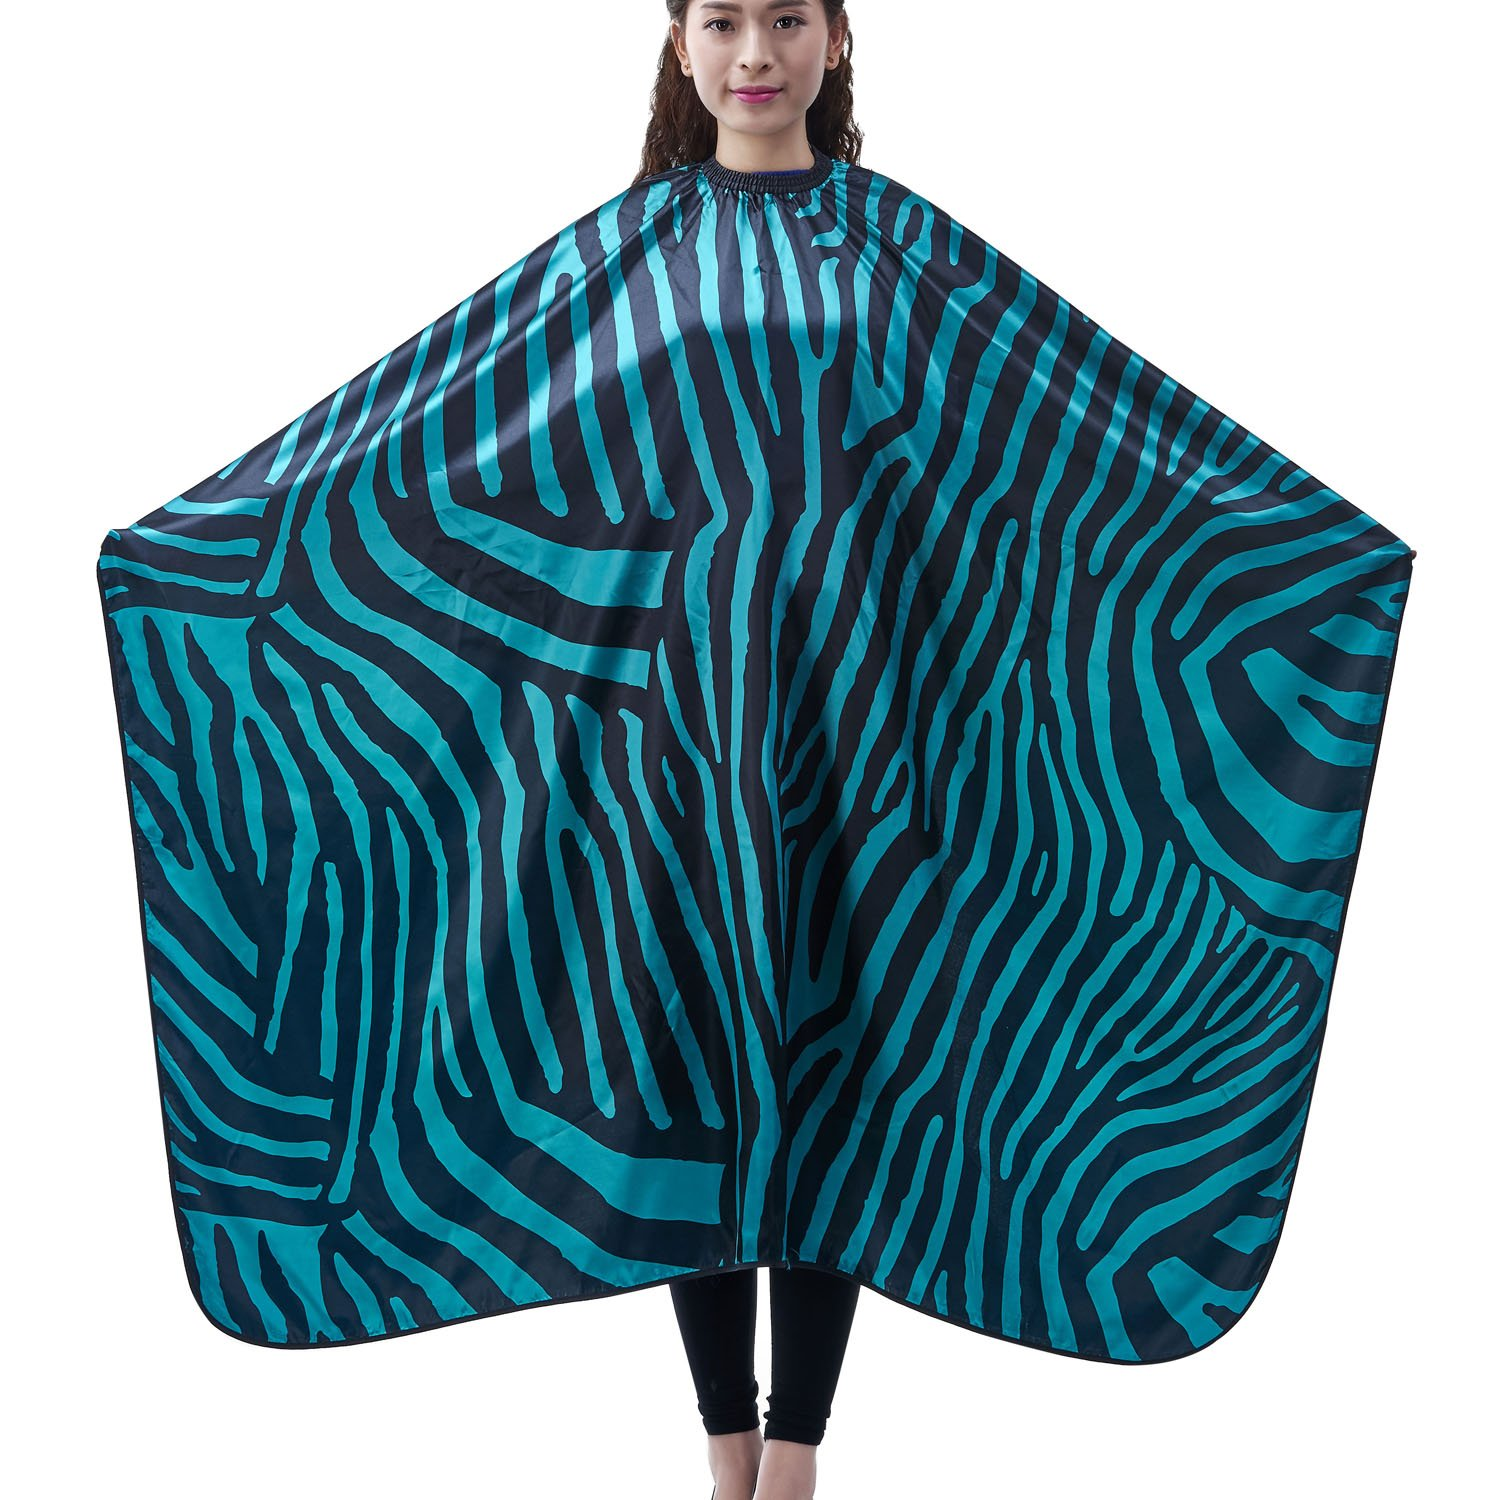 Salon Professional Hair Styling Cape, Colorfulife® Adult Hair Cutting Coloring Styling Waterproof Cape Satin Hairdresser Wai Cloth Barber Gown Home Camps & Hairdressing Wrap Zebra Pattern Capes K007 (Green)